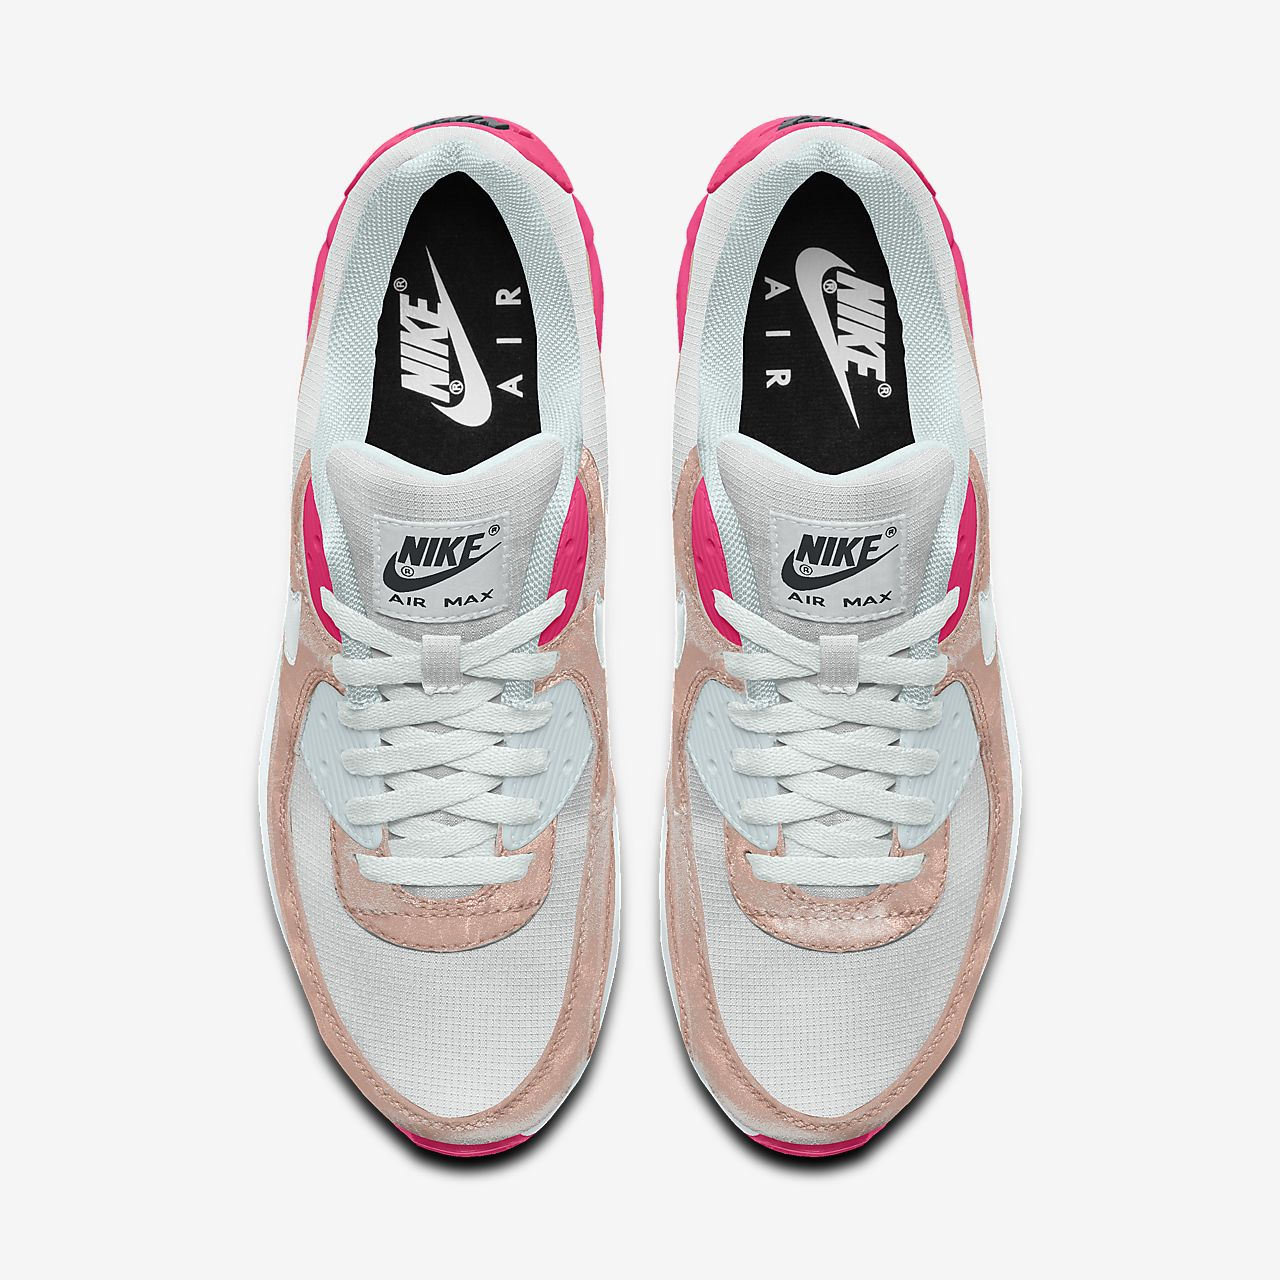 Scarpa lifestyle personalizzabile Nike Air Max 90 Unlocked By You Donna